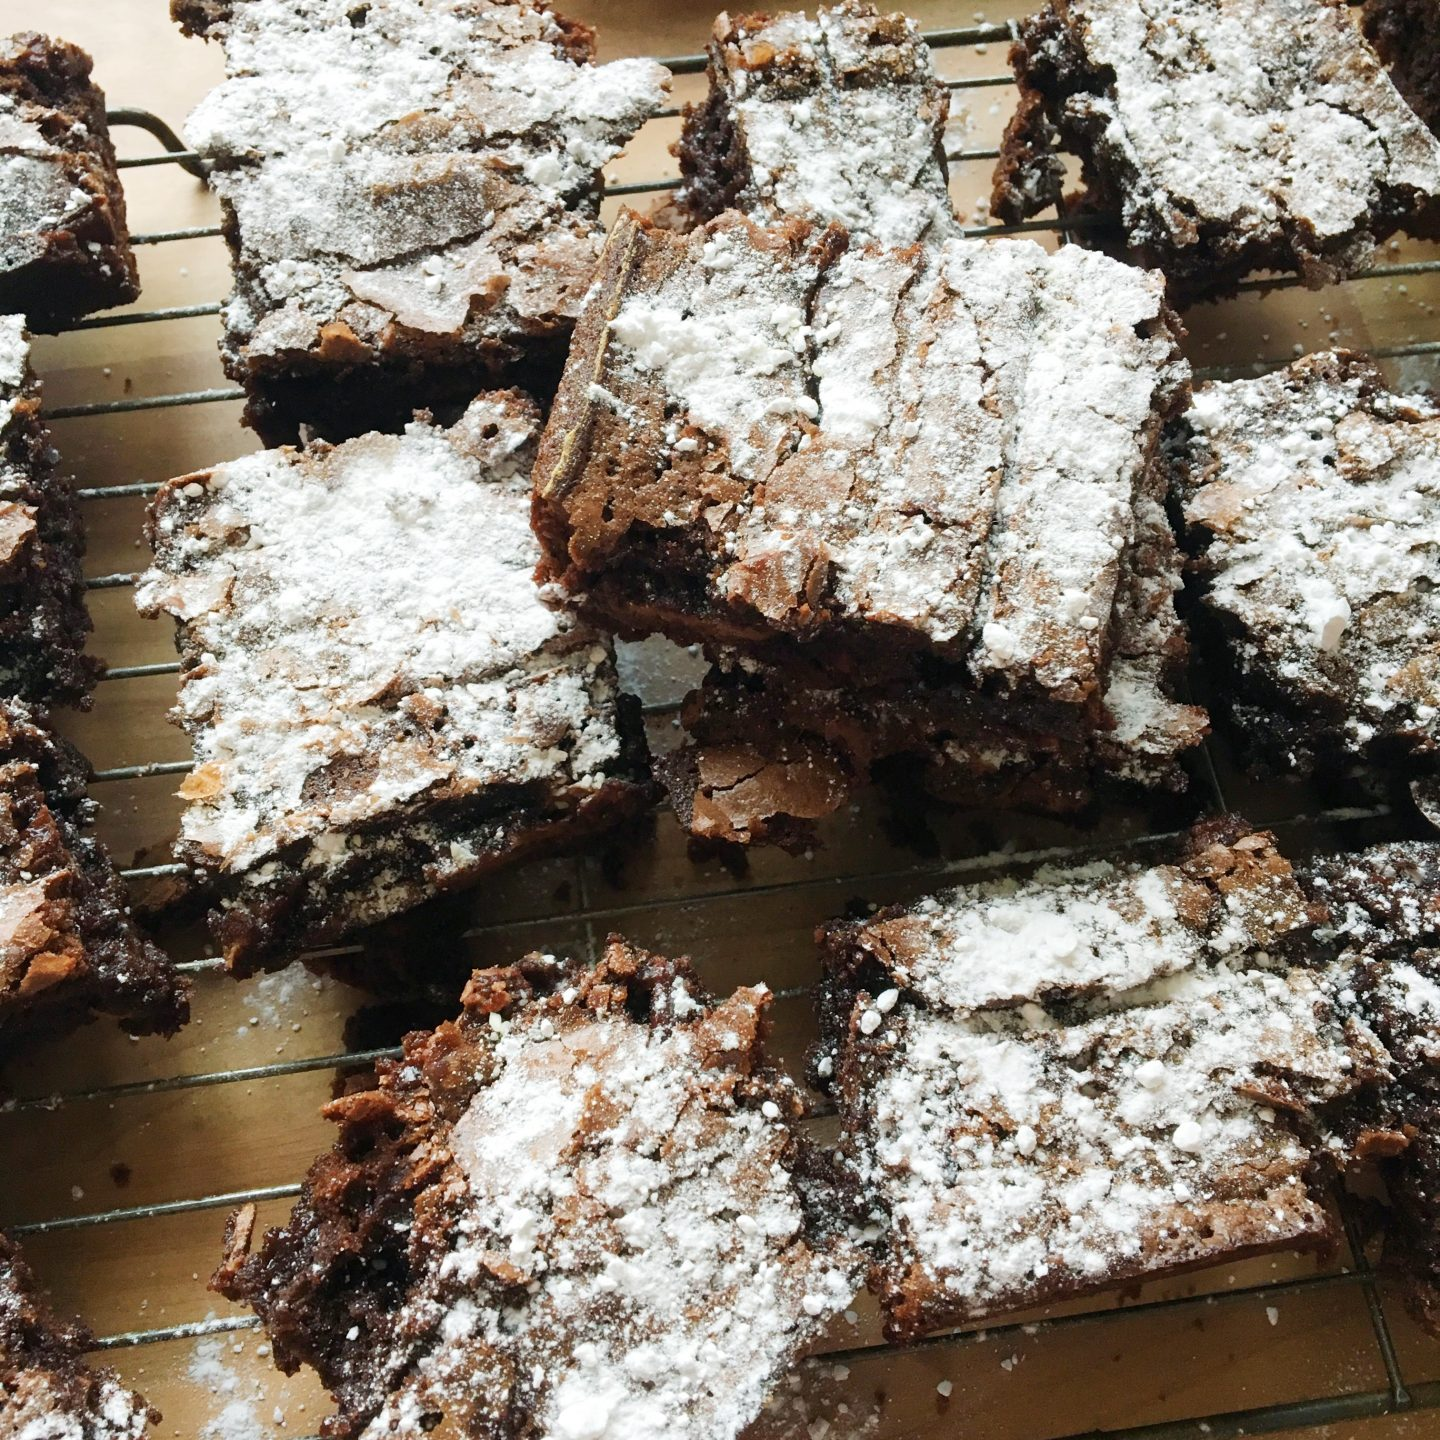 Blogmas Day 12: How to Bake Chocolate Orange Brownies